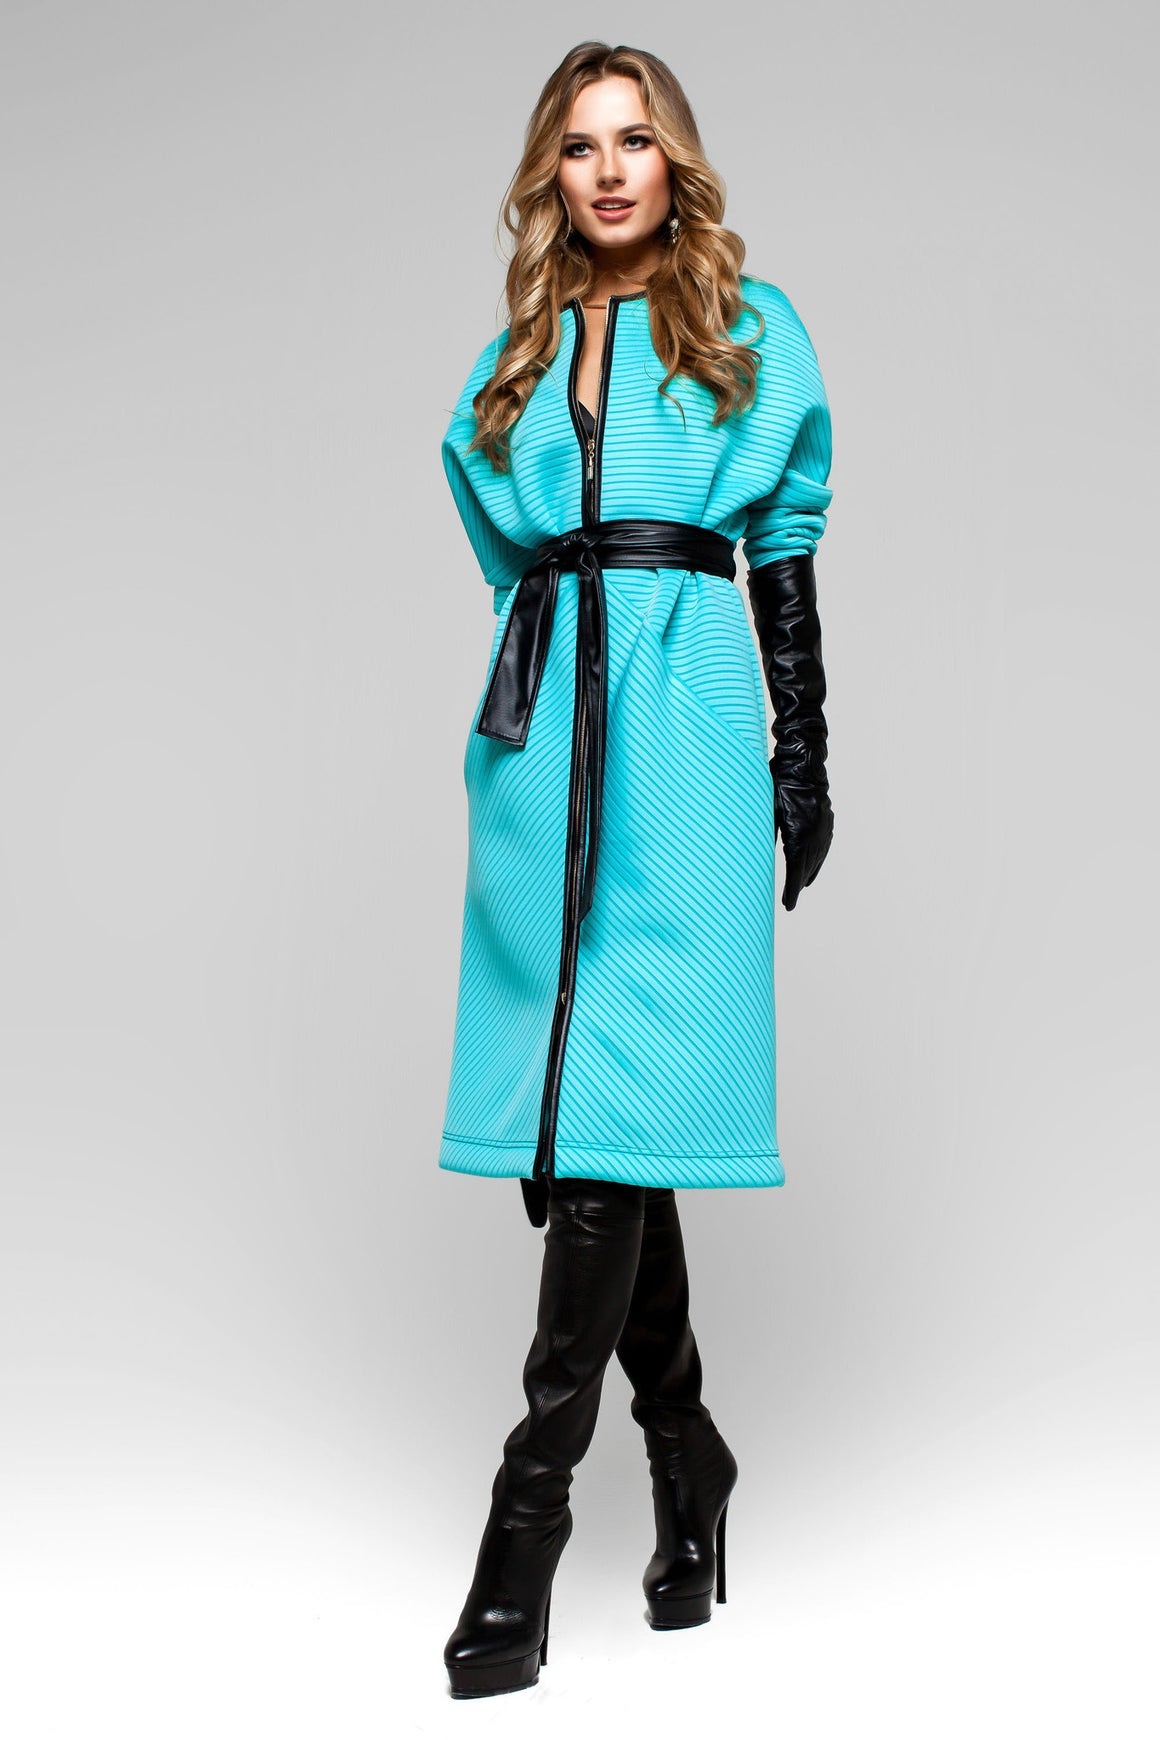 UGHI Sky Blue Women's Fashion Coat with Wide Black Belt - Kollekcio  - 1